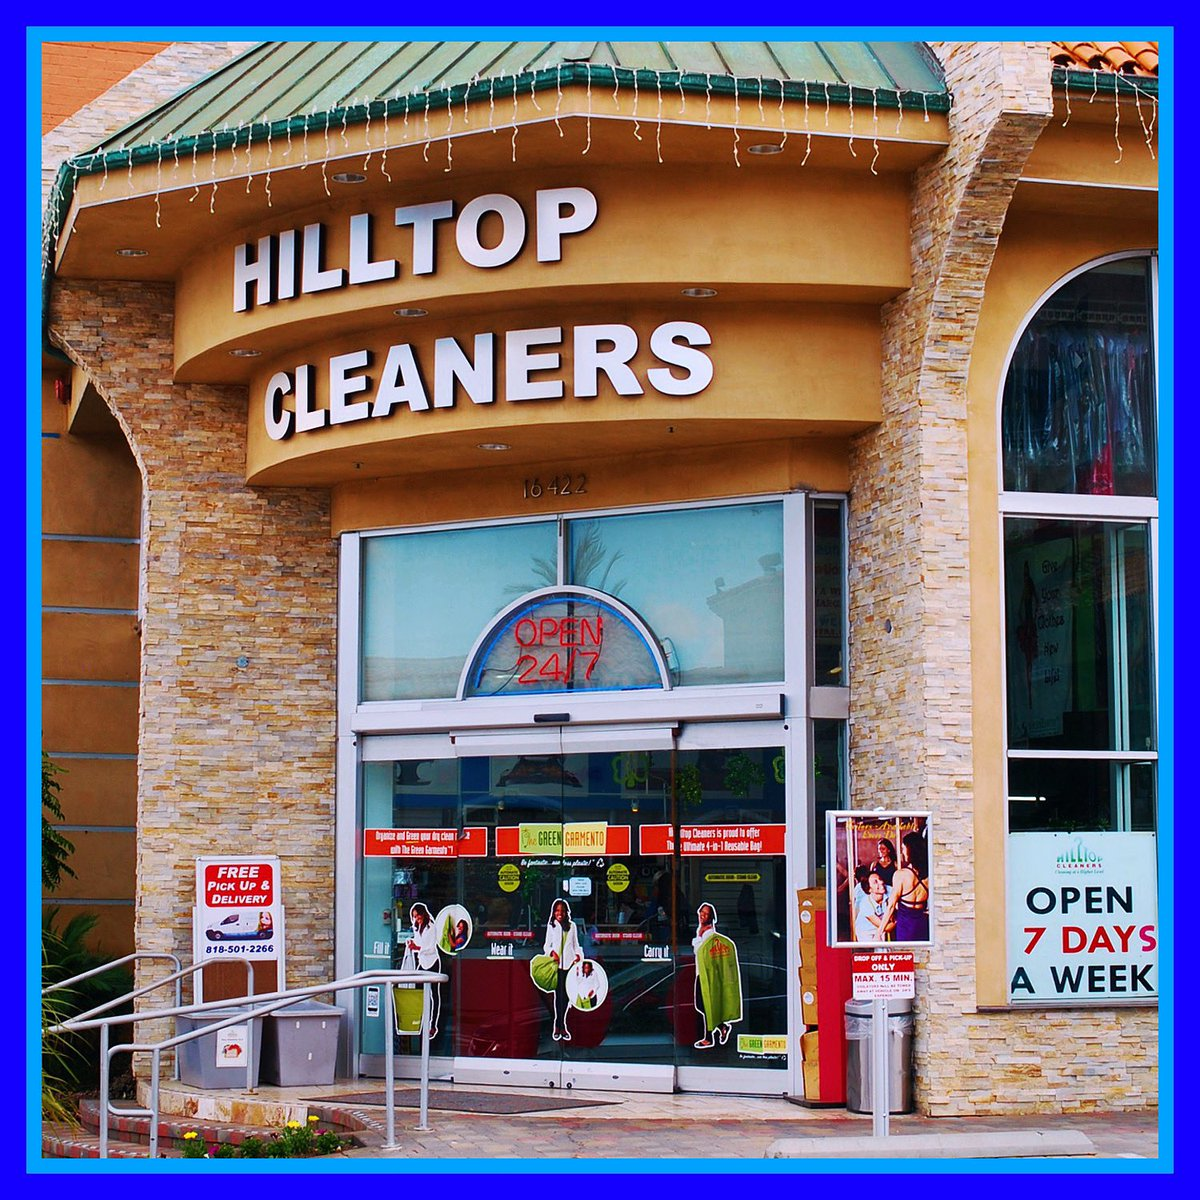 #hilltopcleaners has been here since the beginning. #Caring, servicing and doing our part to keep ur clothes #clean  #virusfree. We want all our customers to know that we will be here for u, #OPENforbusiness, ready to take care of all ur #drycleaning needs. #staysafepic.twitter.com/AXzY4M3HVk